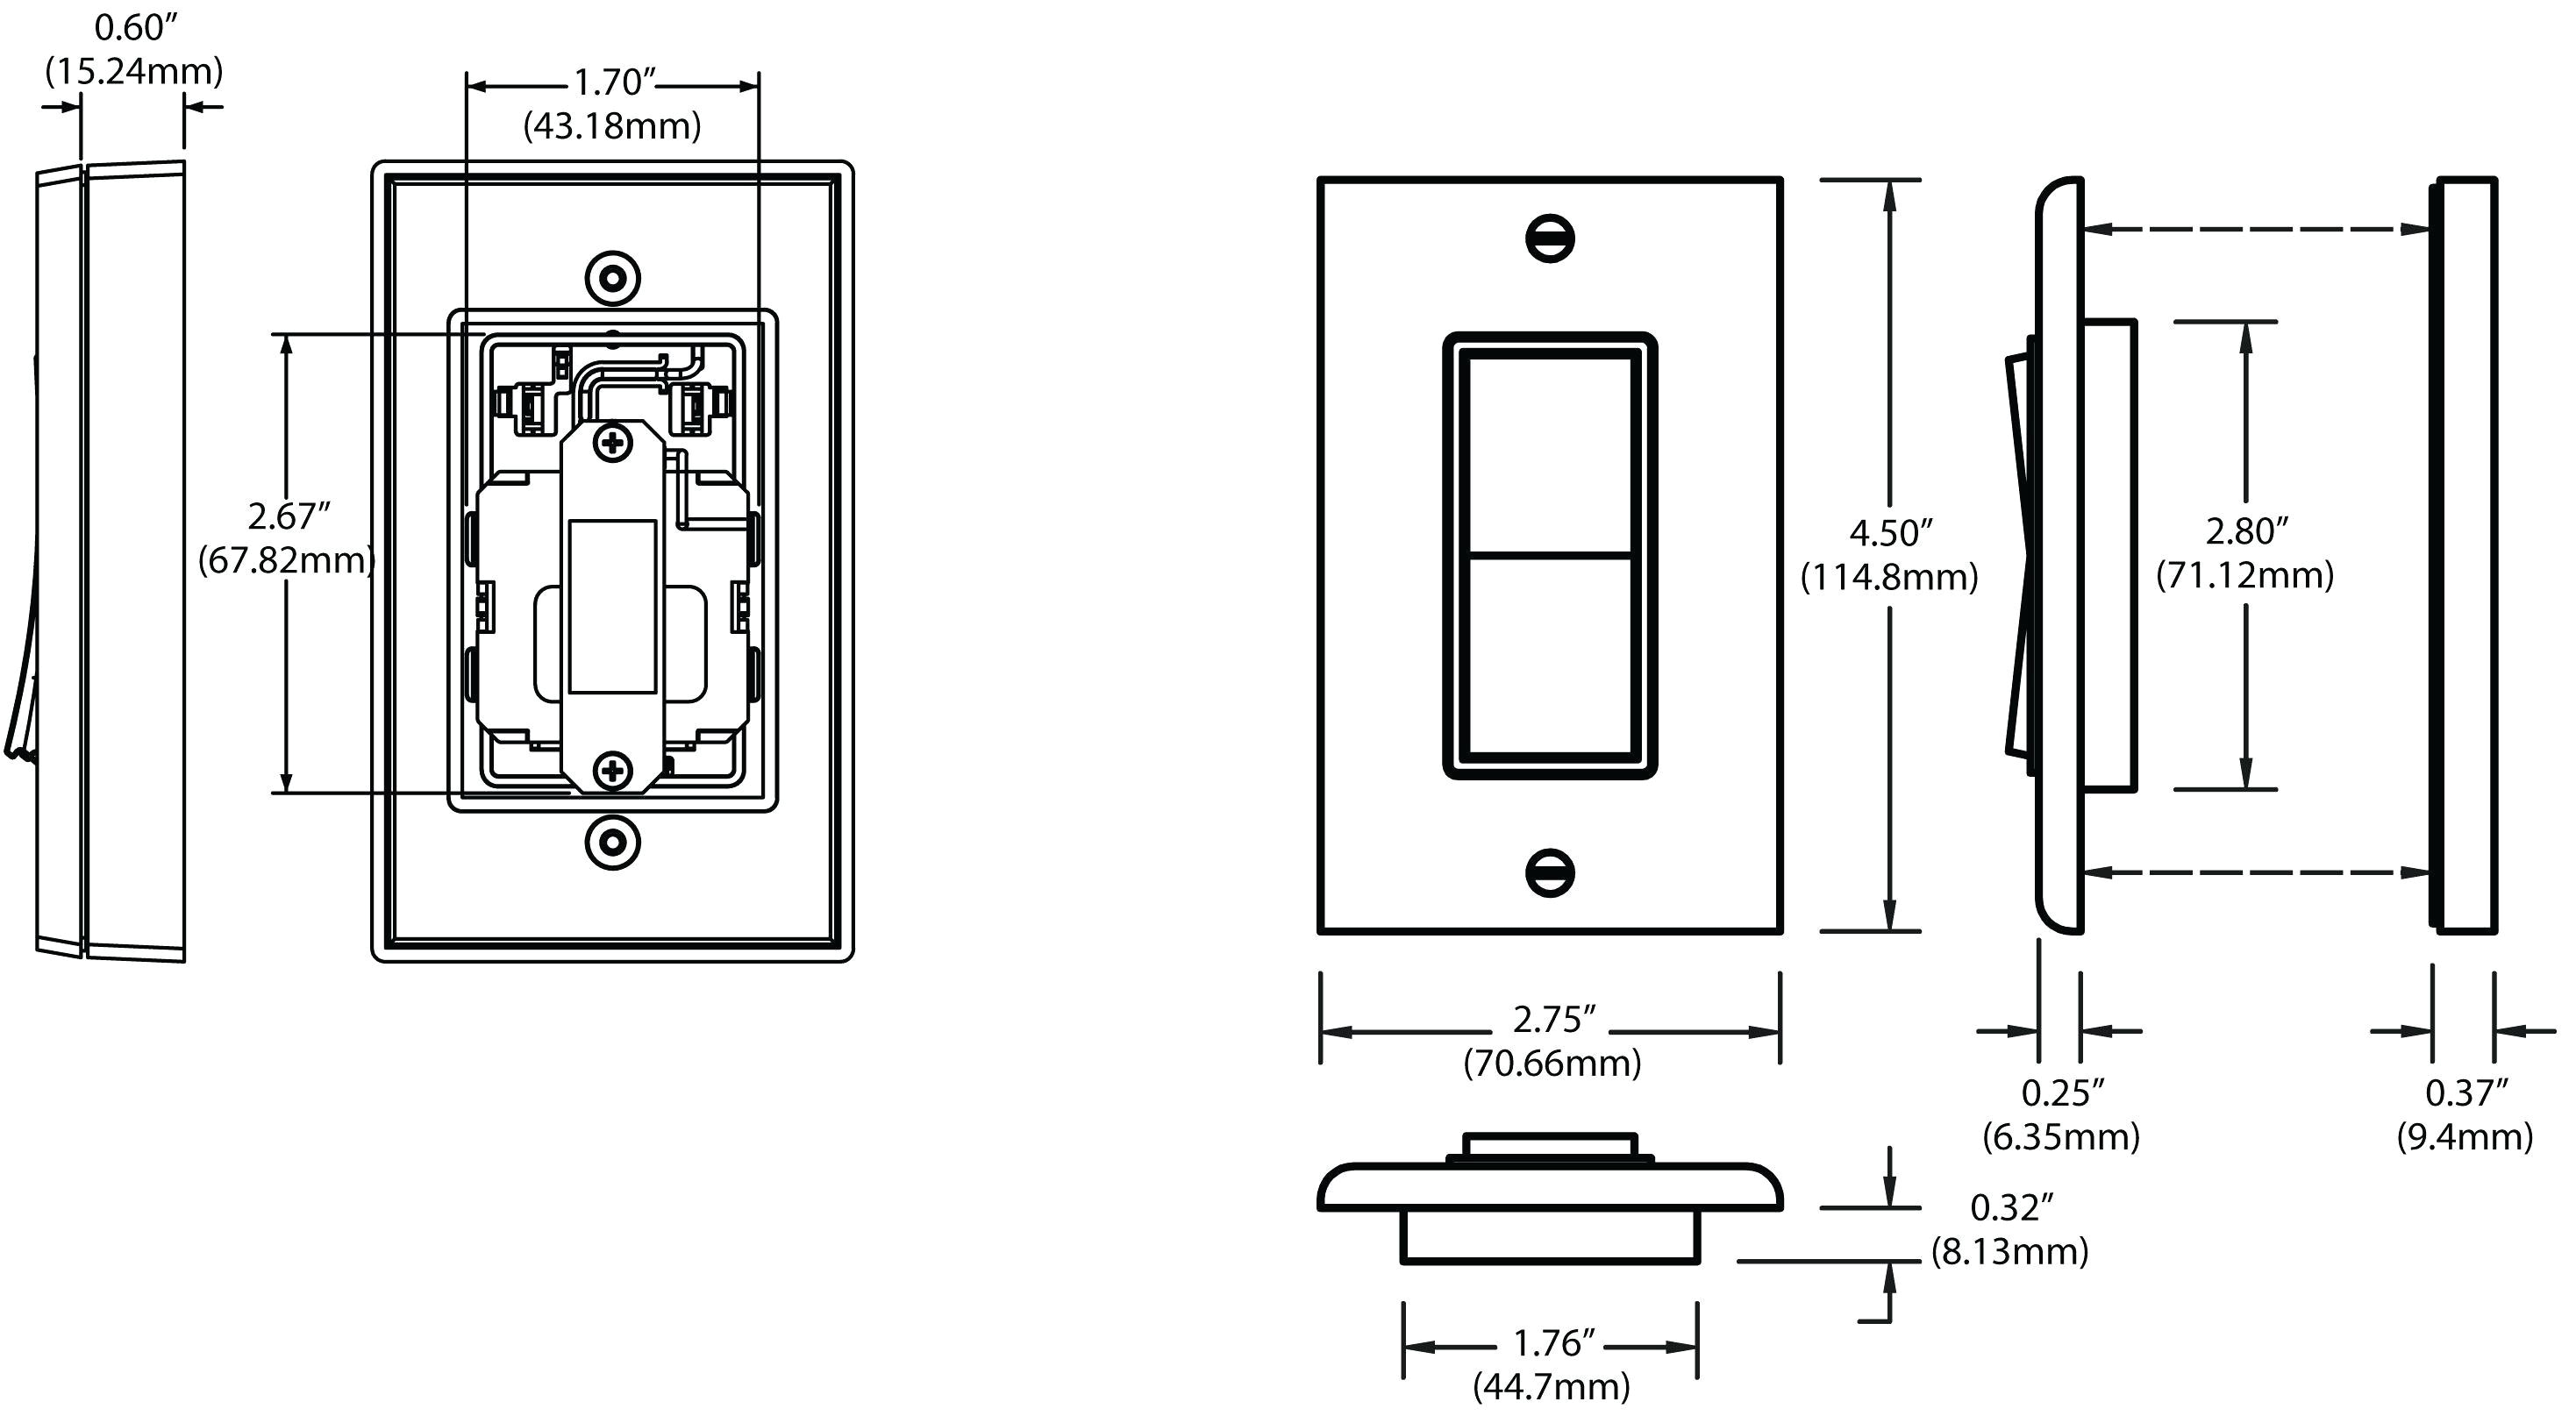 wiring diagram 2 lights double switch best leviton double switch wiring diagram lovely beautiful leviton switch